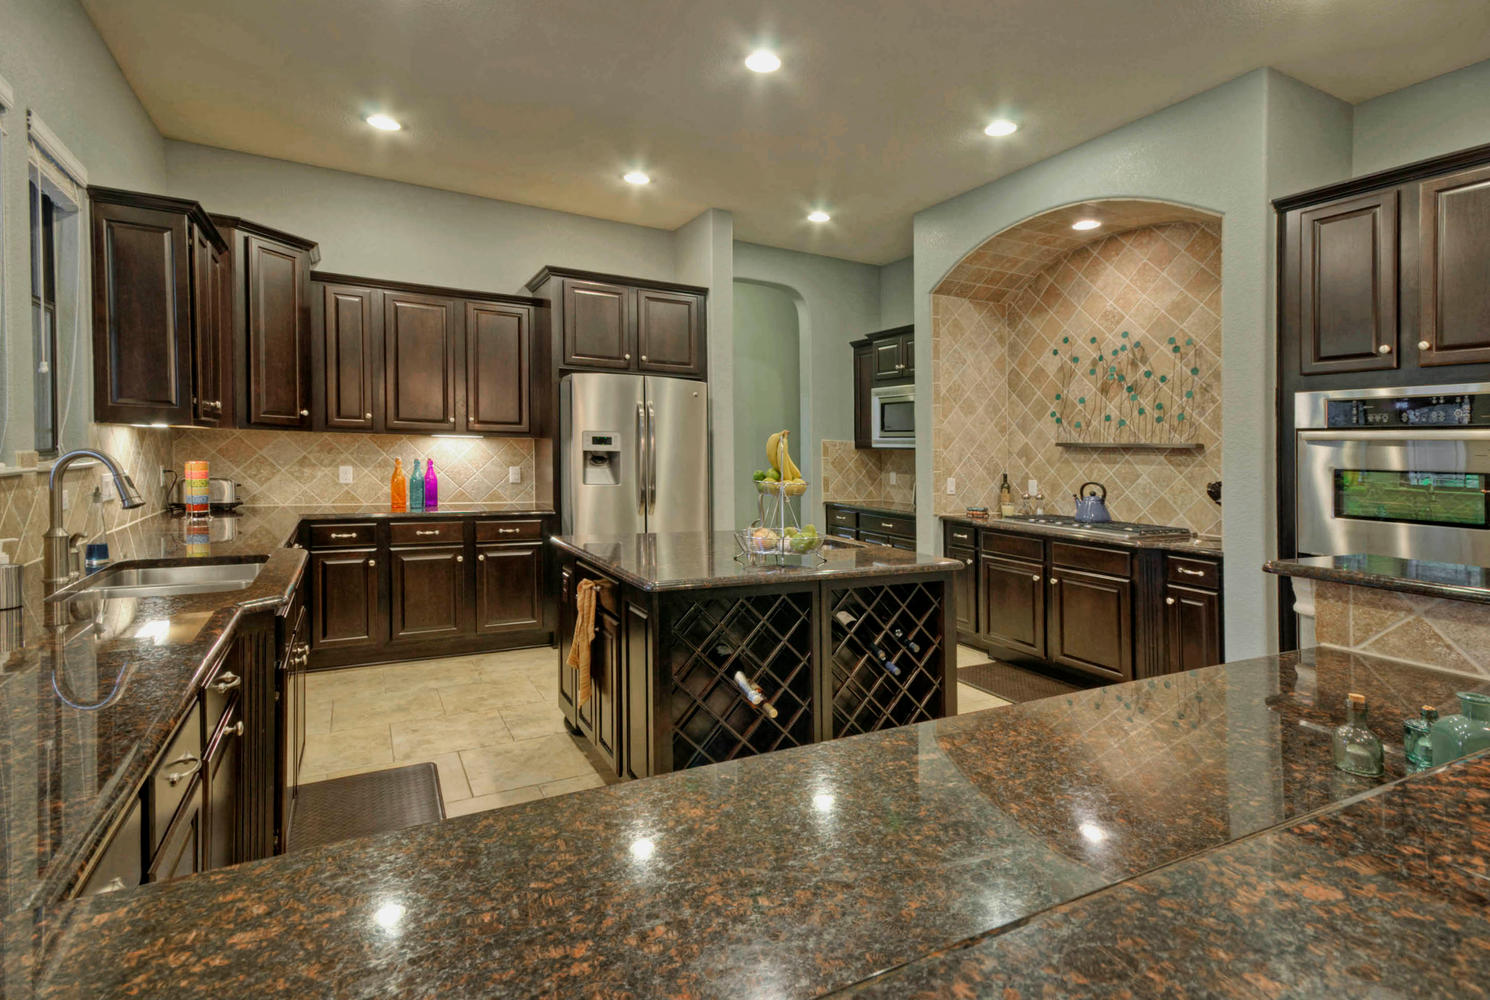 Charming Single Handle Kitchen Faucet (View 9 of 10)